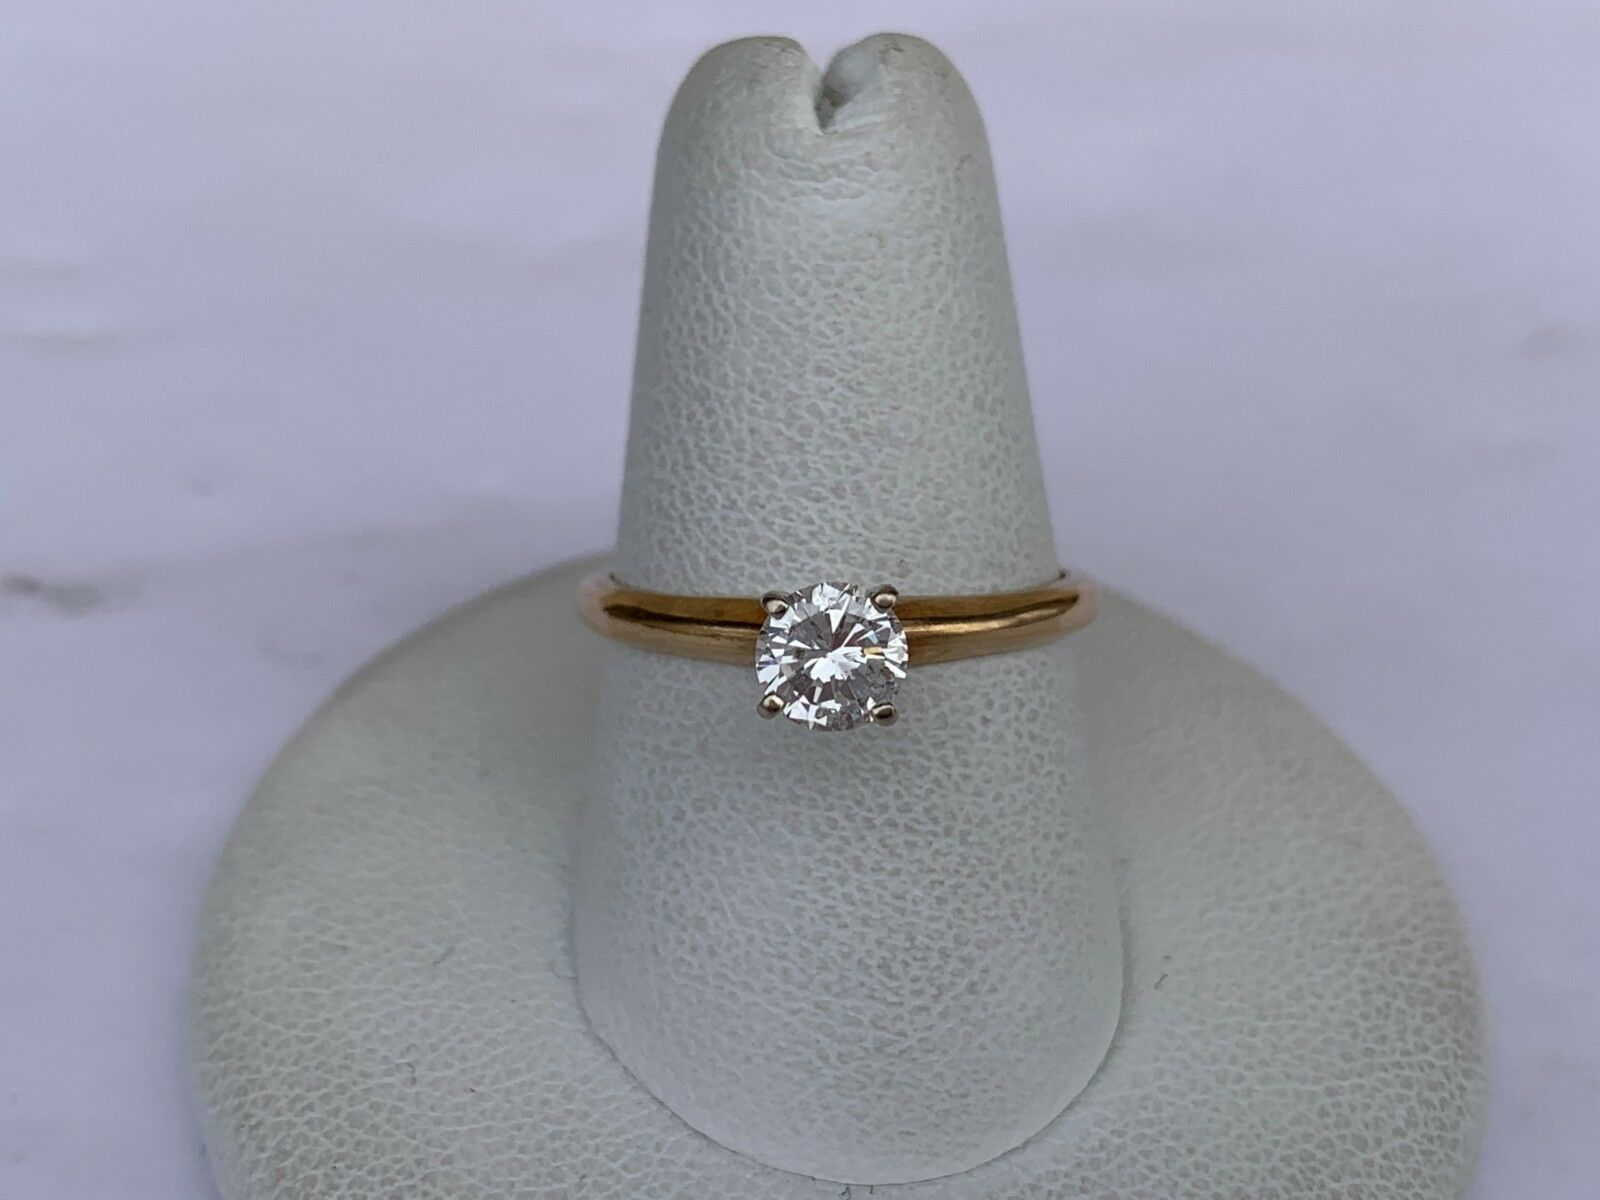 14K Yellow gold Round Diamond Solitaire Ring 0.43 CT (Size 7.25)